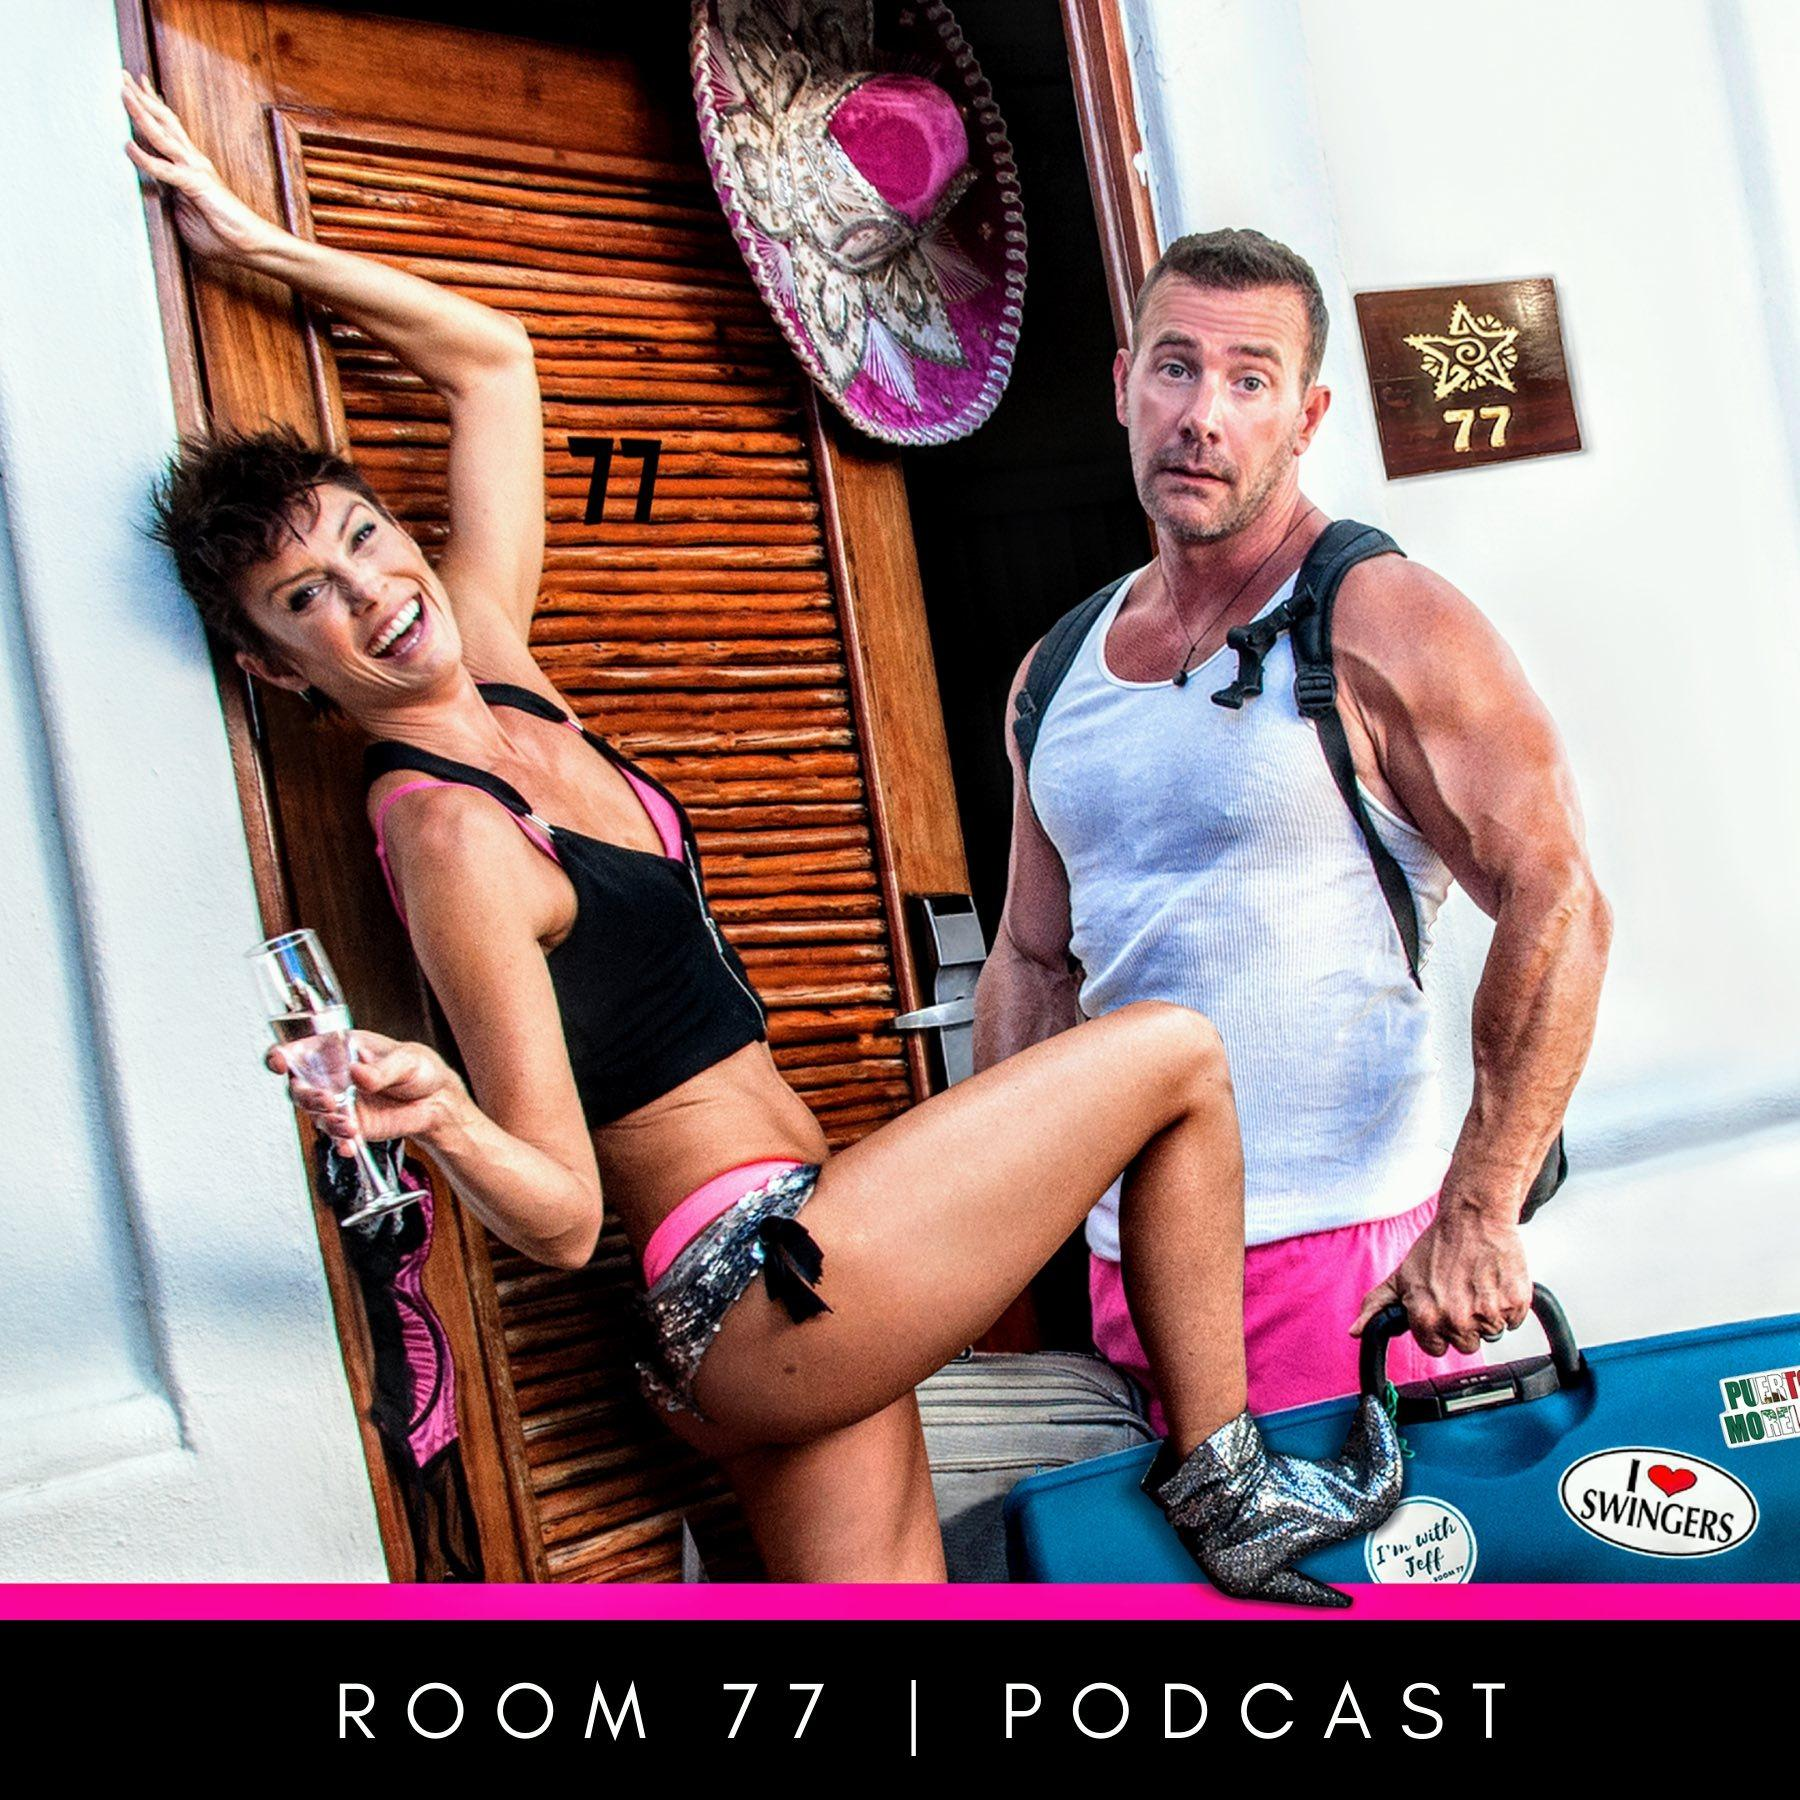 Room 77 Swinger Podcast